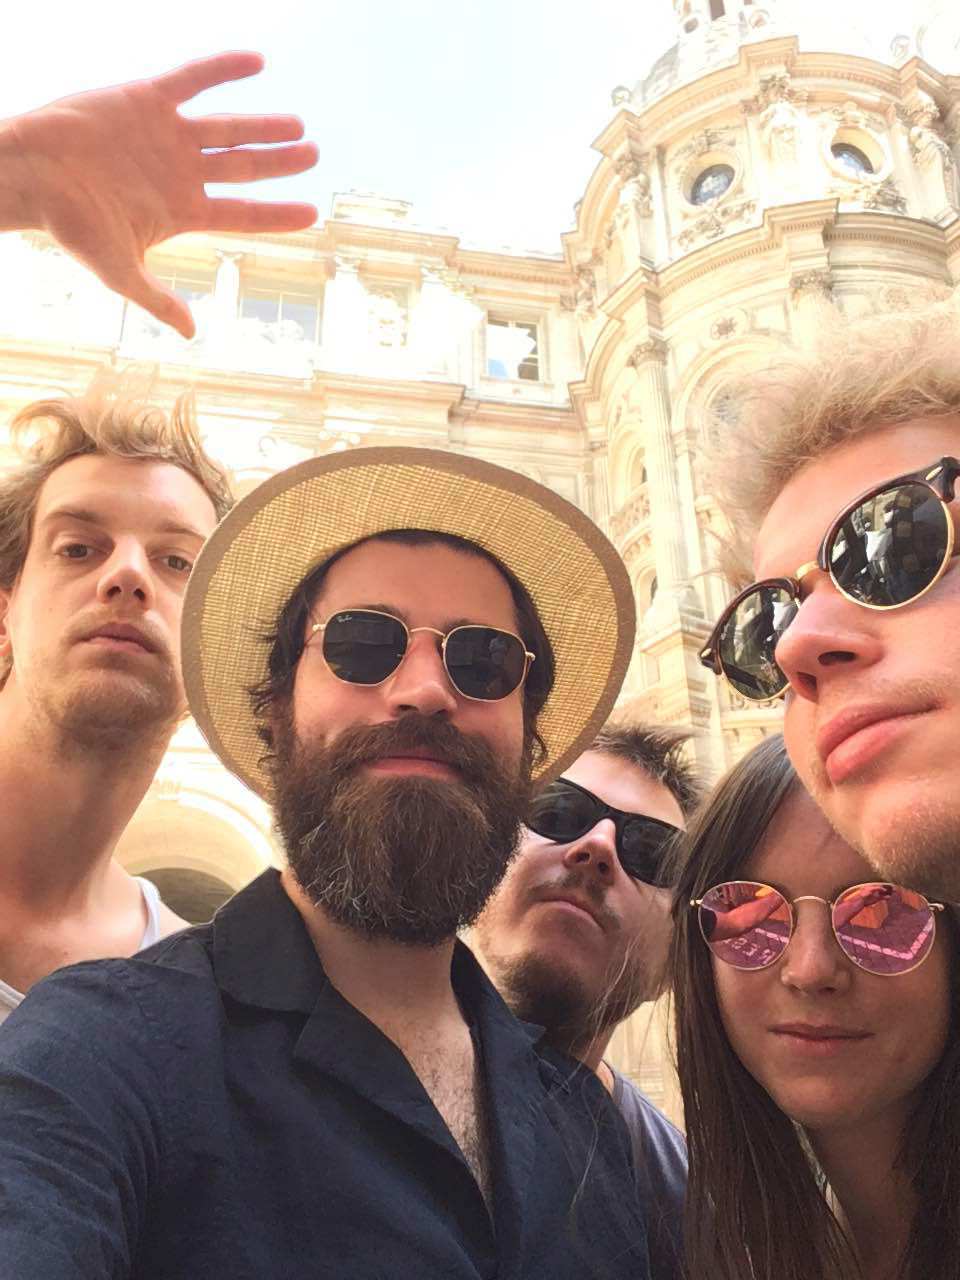 Balthazar selfie original du groupe musique festival Fnac Live 2016 Paris Maarten Devoldere Patricia Vanneste Jinte Deprez Simon Casier Michiel Balcaen photo exclu usofparis blog